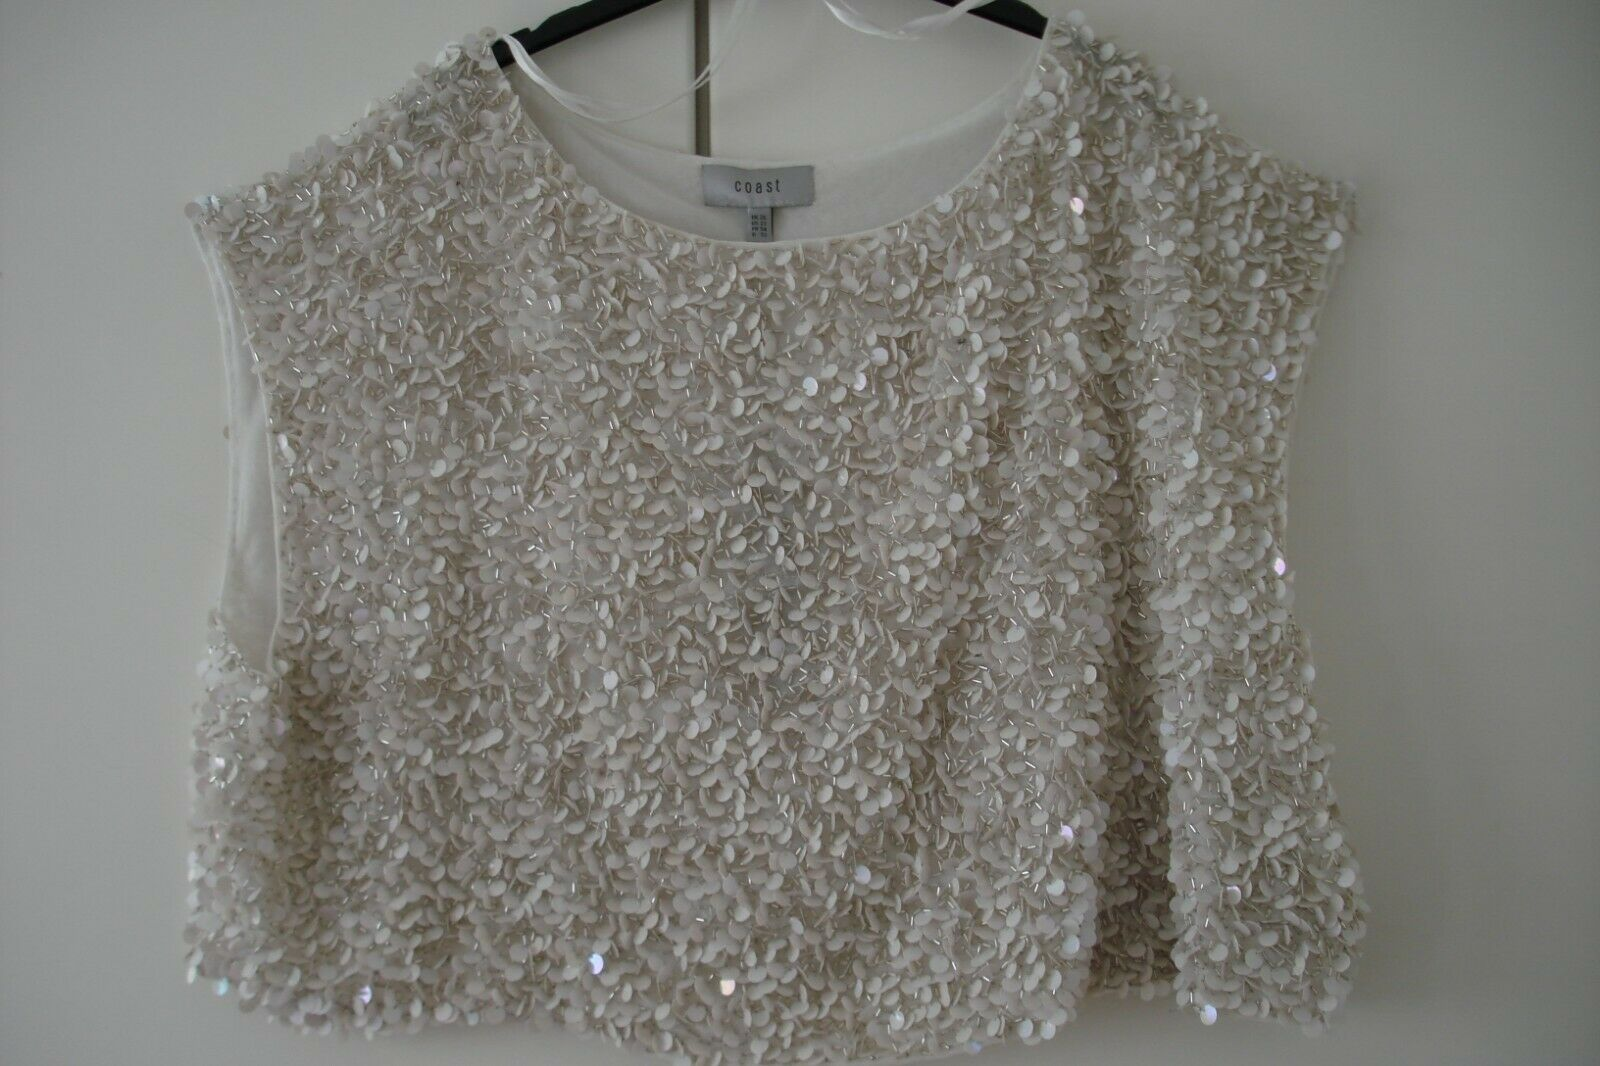 COAST SULETTA IVORY SEQUINS TOP SPECIAL OCCASION PARTY UK LARGE Größe 26 PLUS